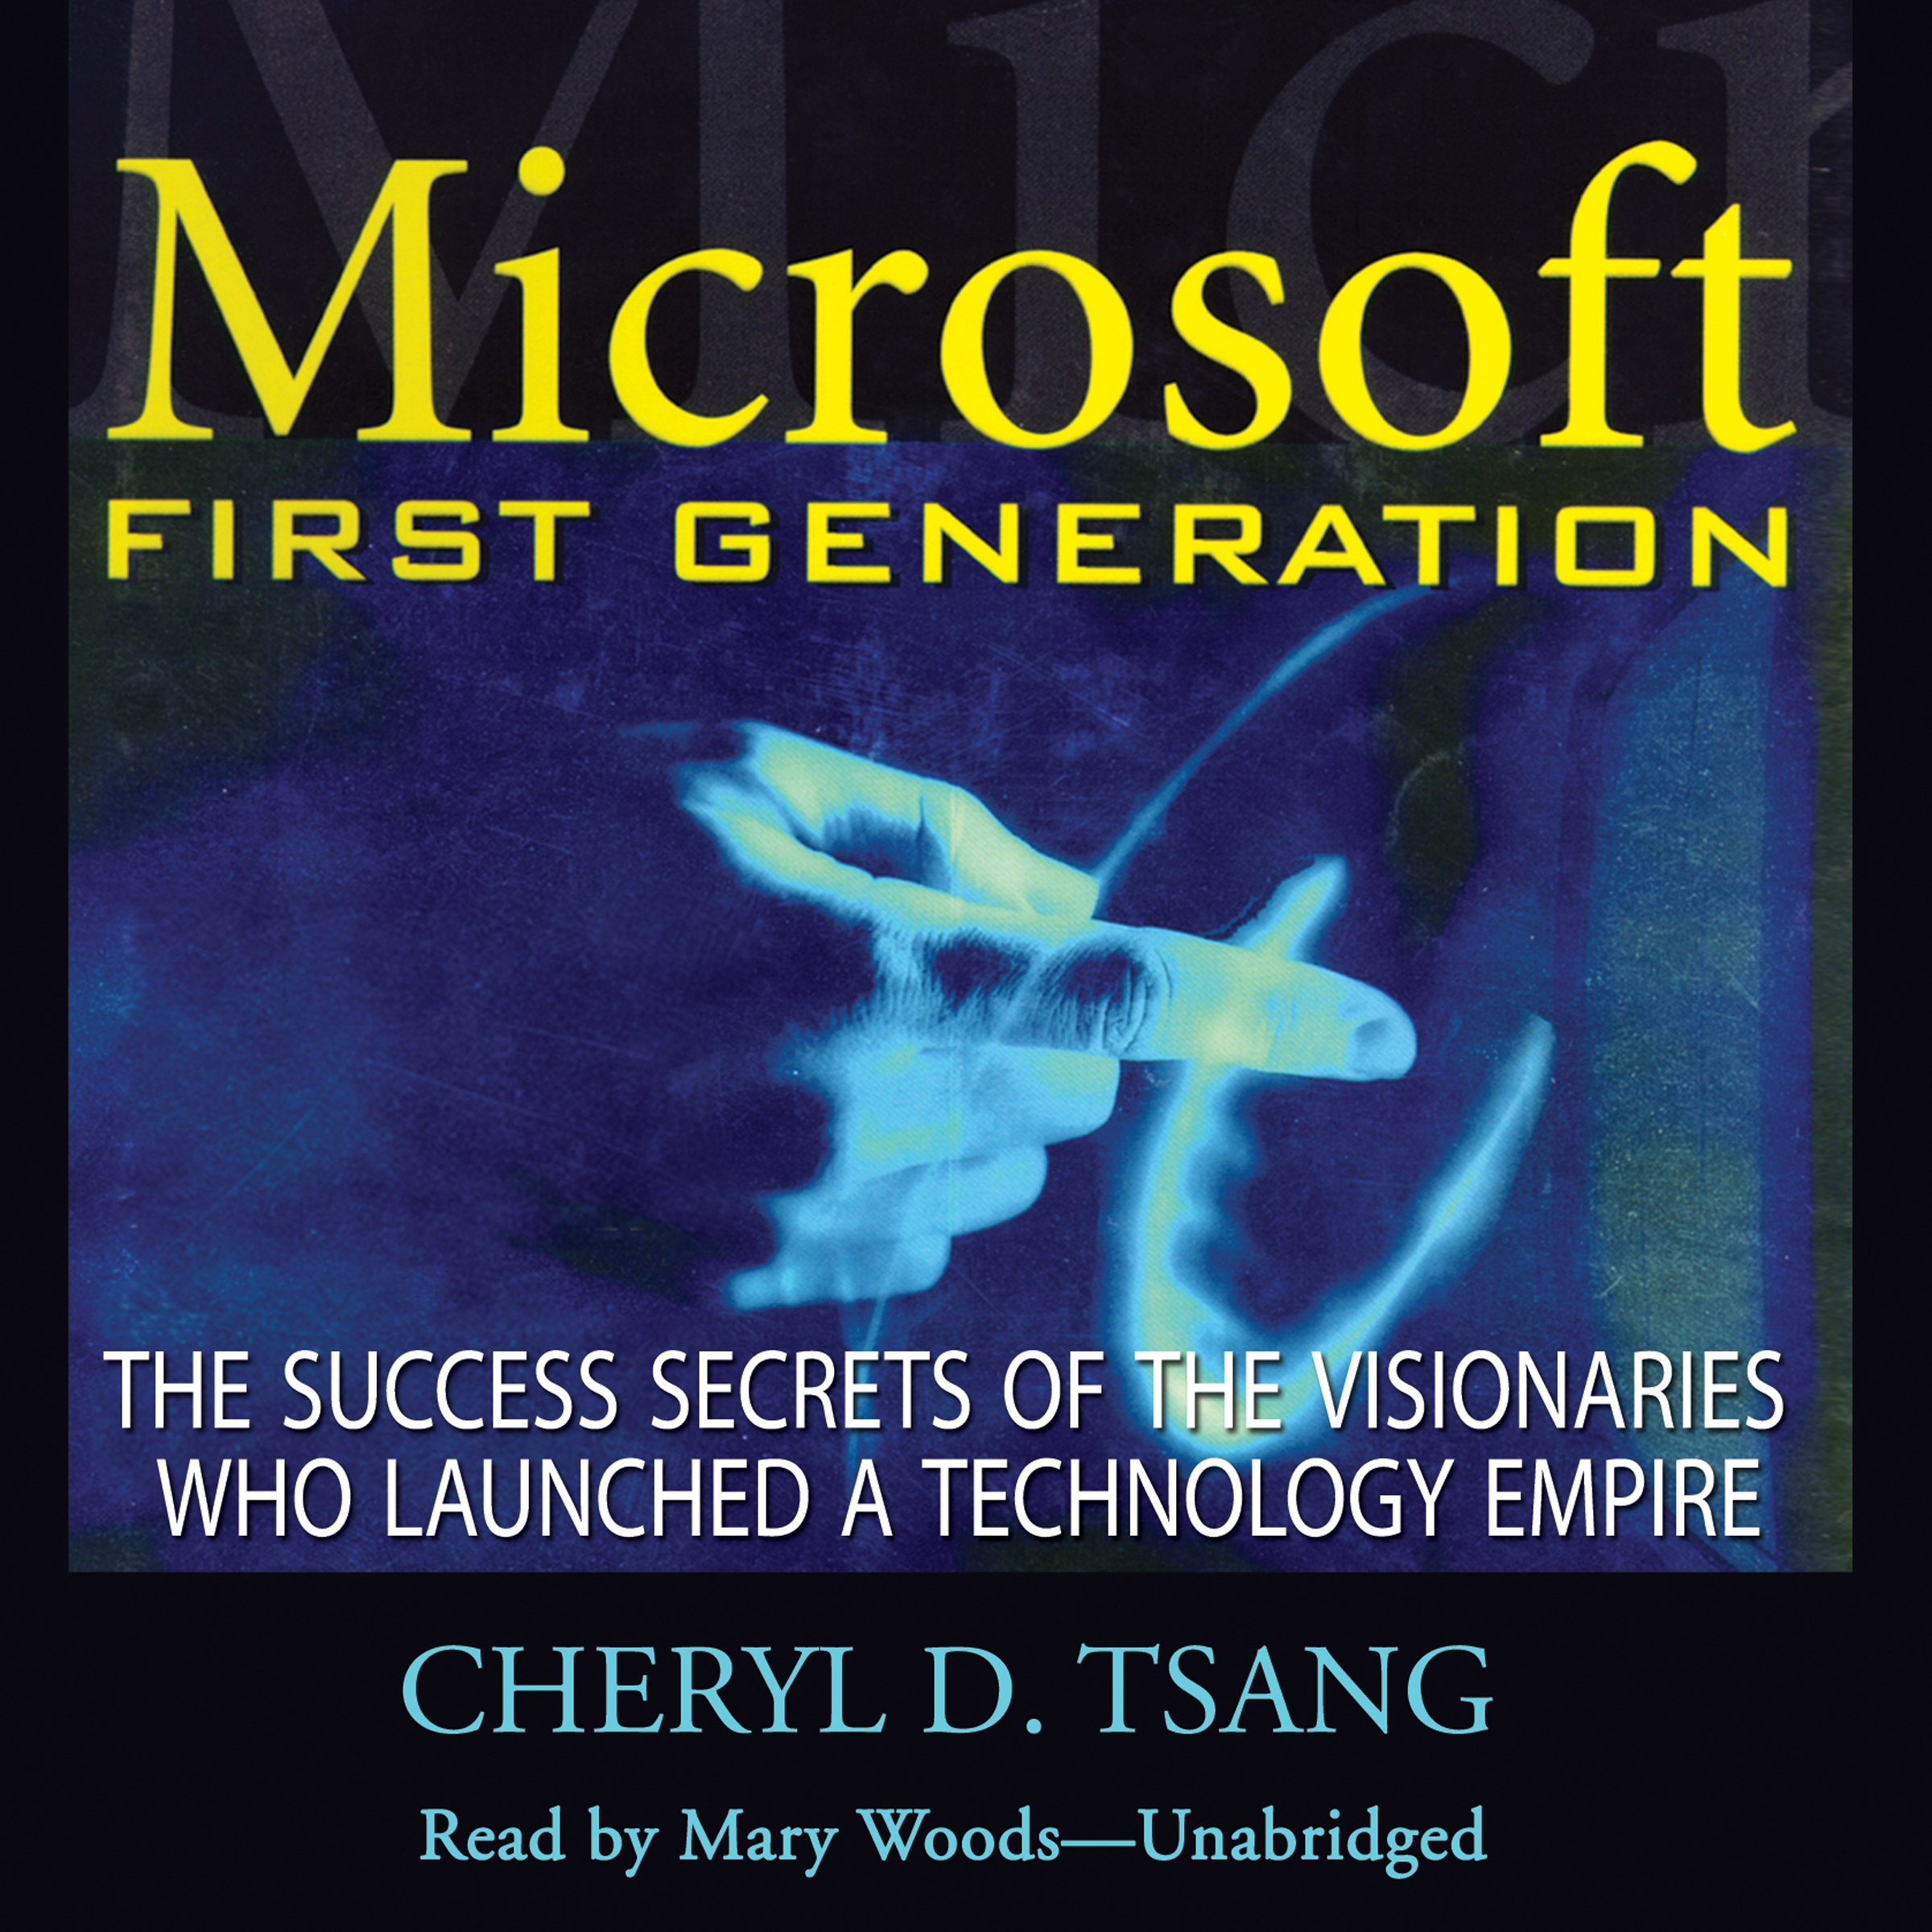 Printable Microsoft First Generation: The Success Secrets of the Visionaries Who Launched a Technology Empire Audiobook Cover Art